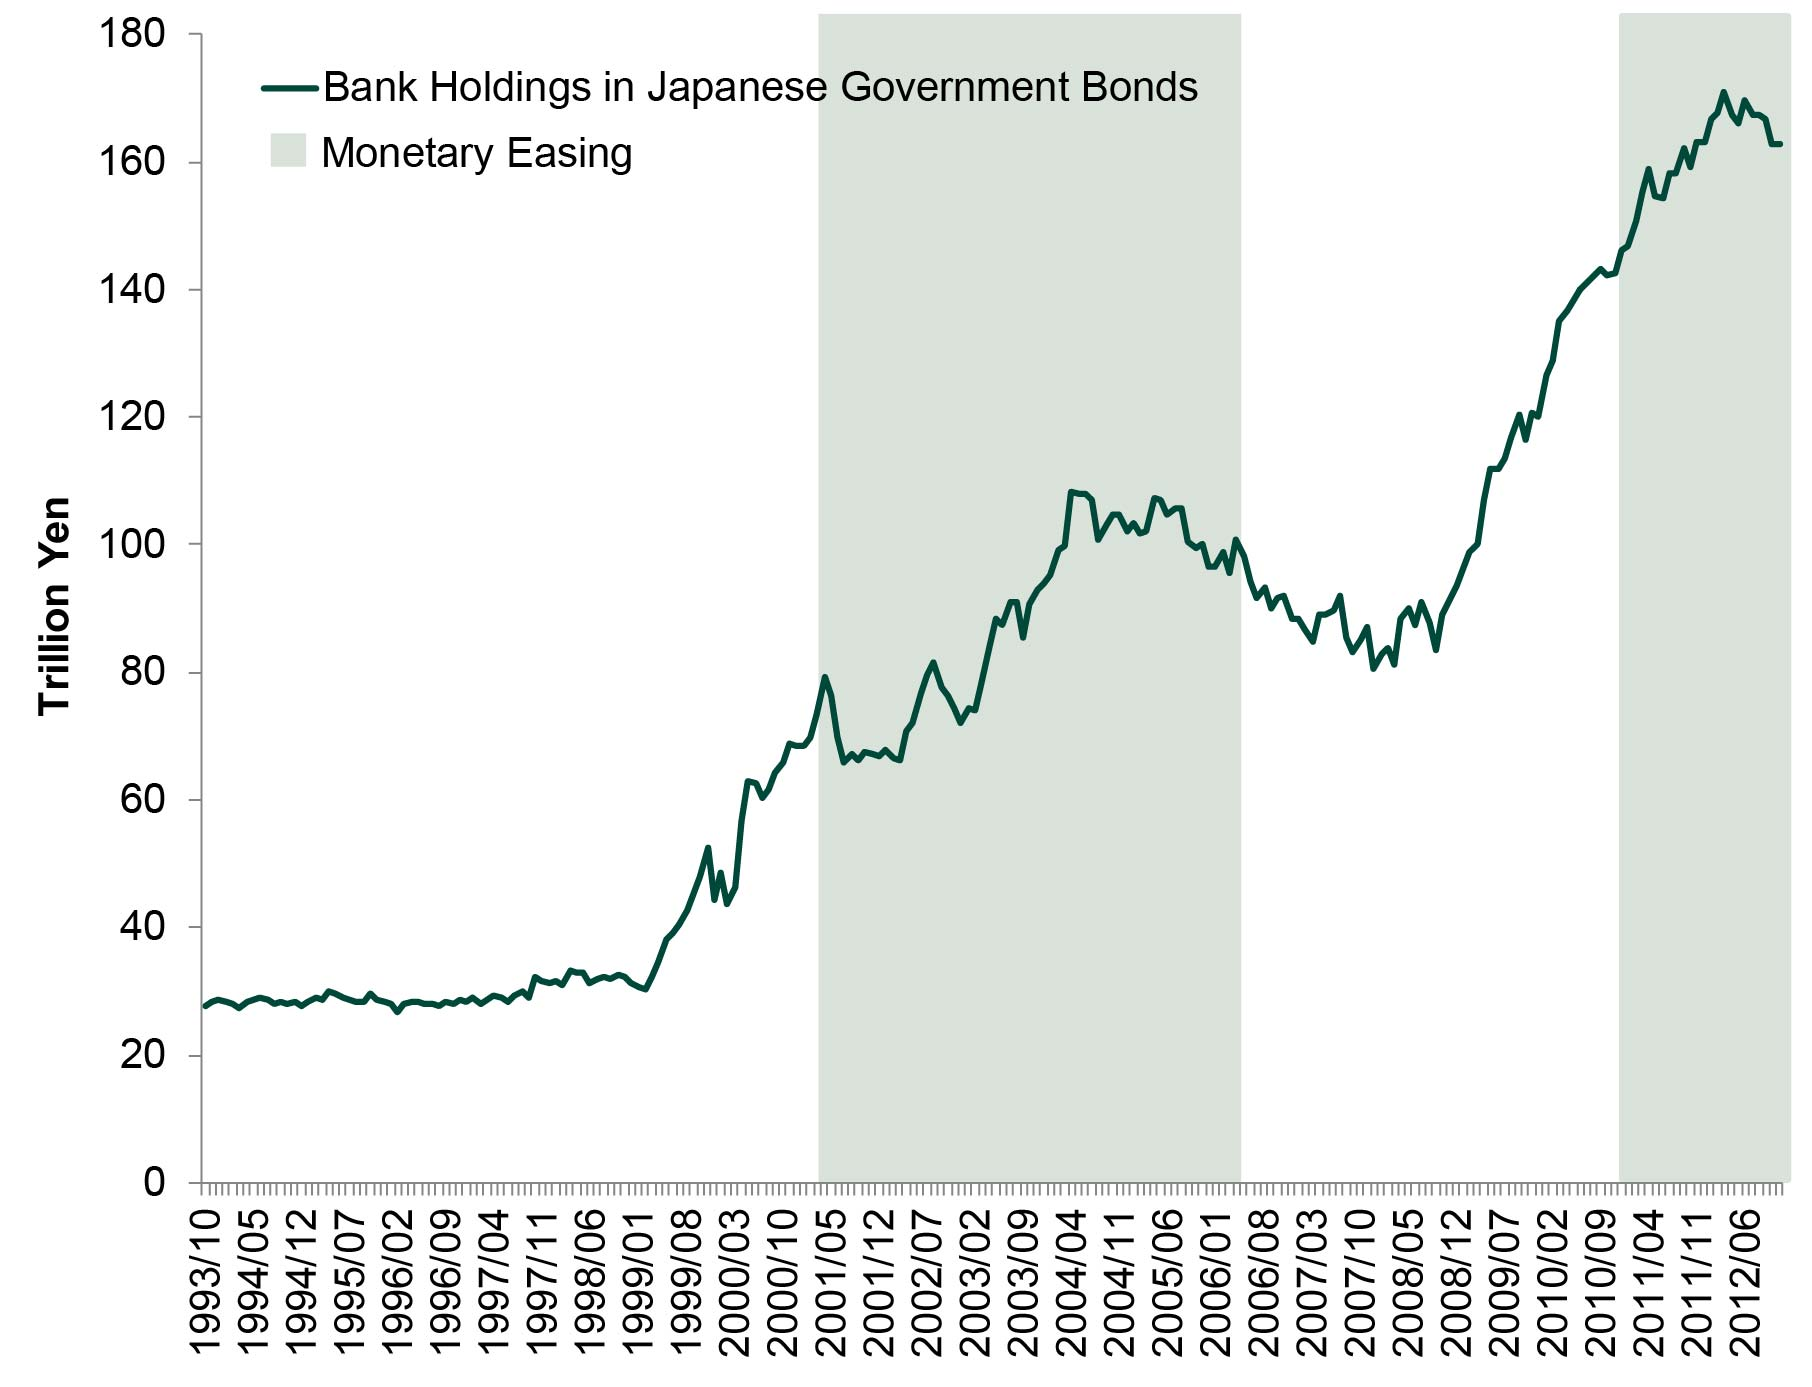 Exhibit 5: Japanese Banks' Government Bond Holdings